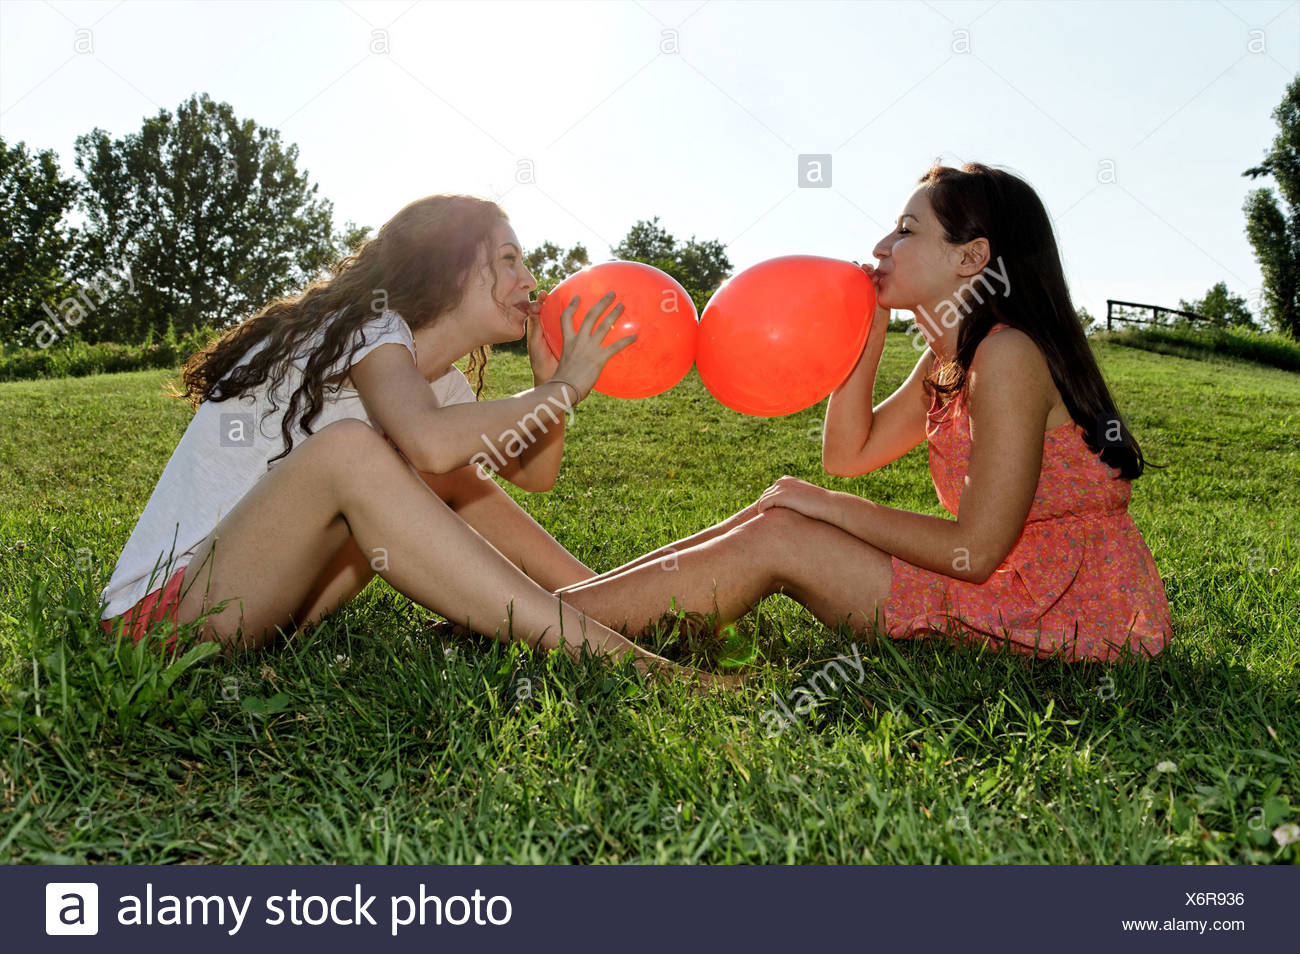 Two young women sitting on grass bowing up red balloons - Stock Image